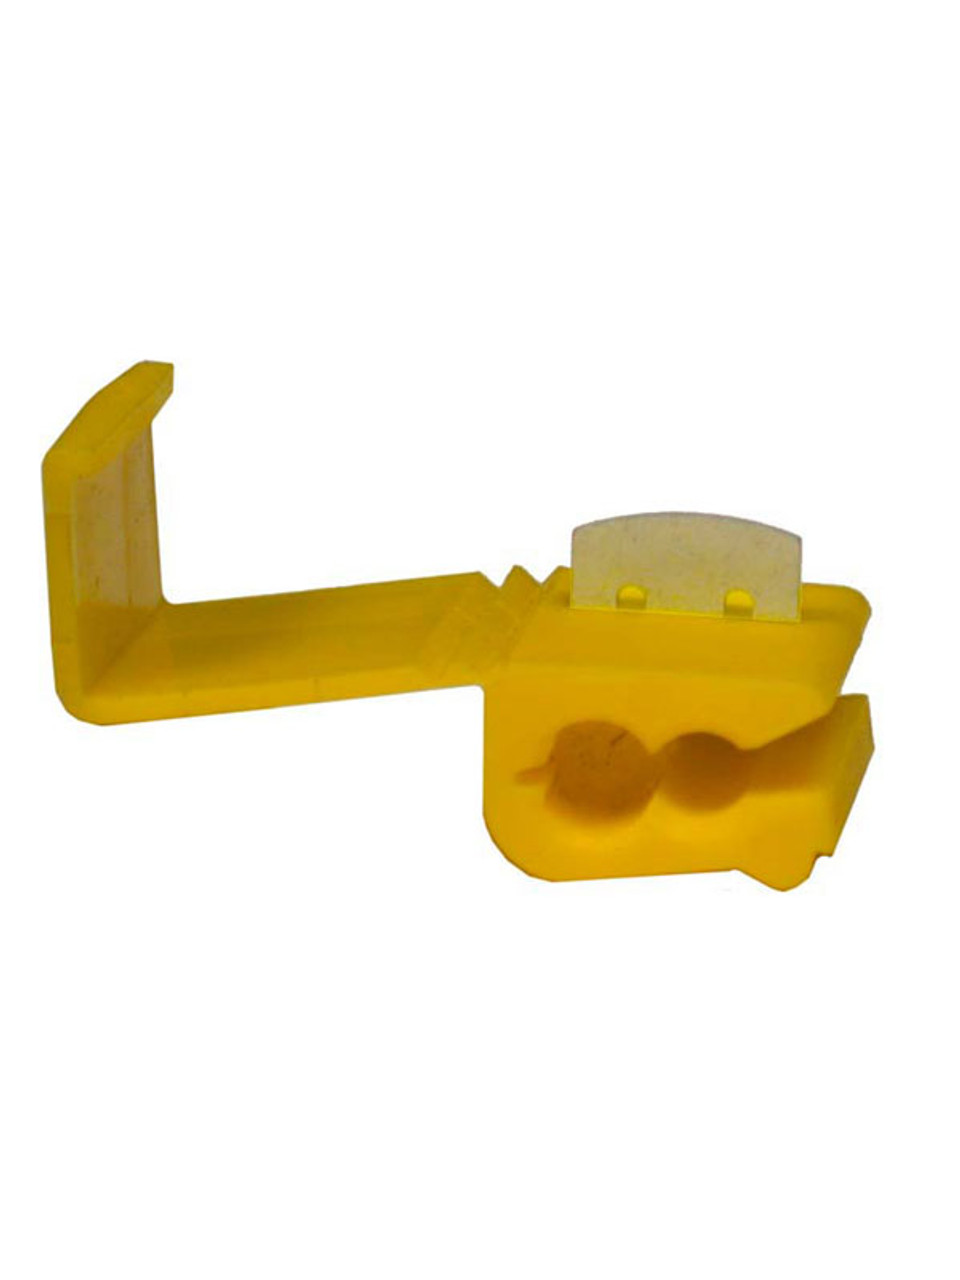 562 --- Yellow Scotchlok™, Fits 12 to 10 Gauge